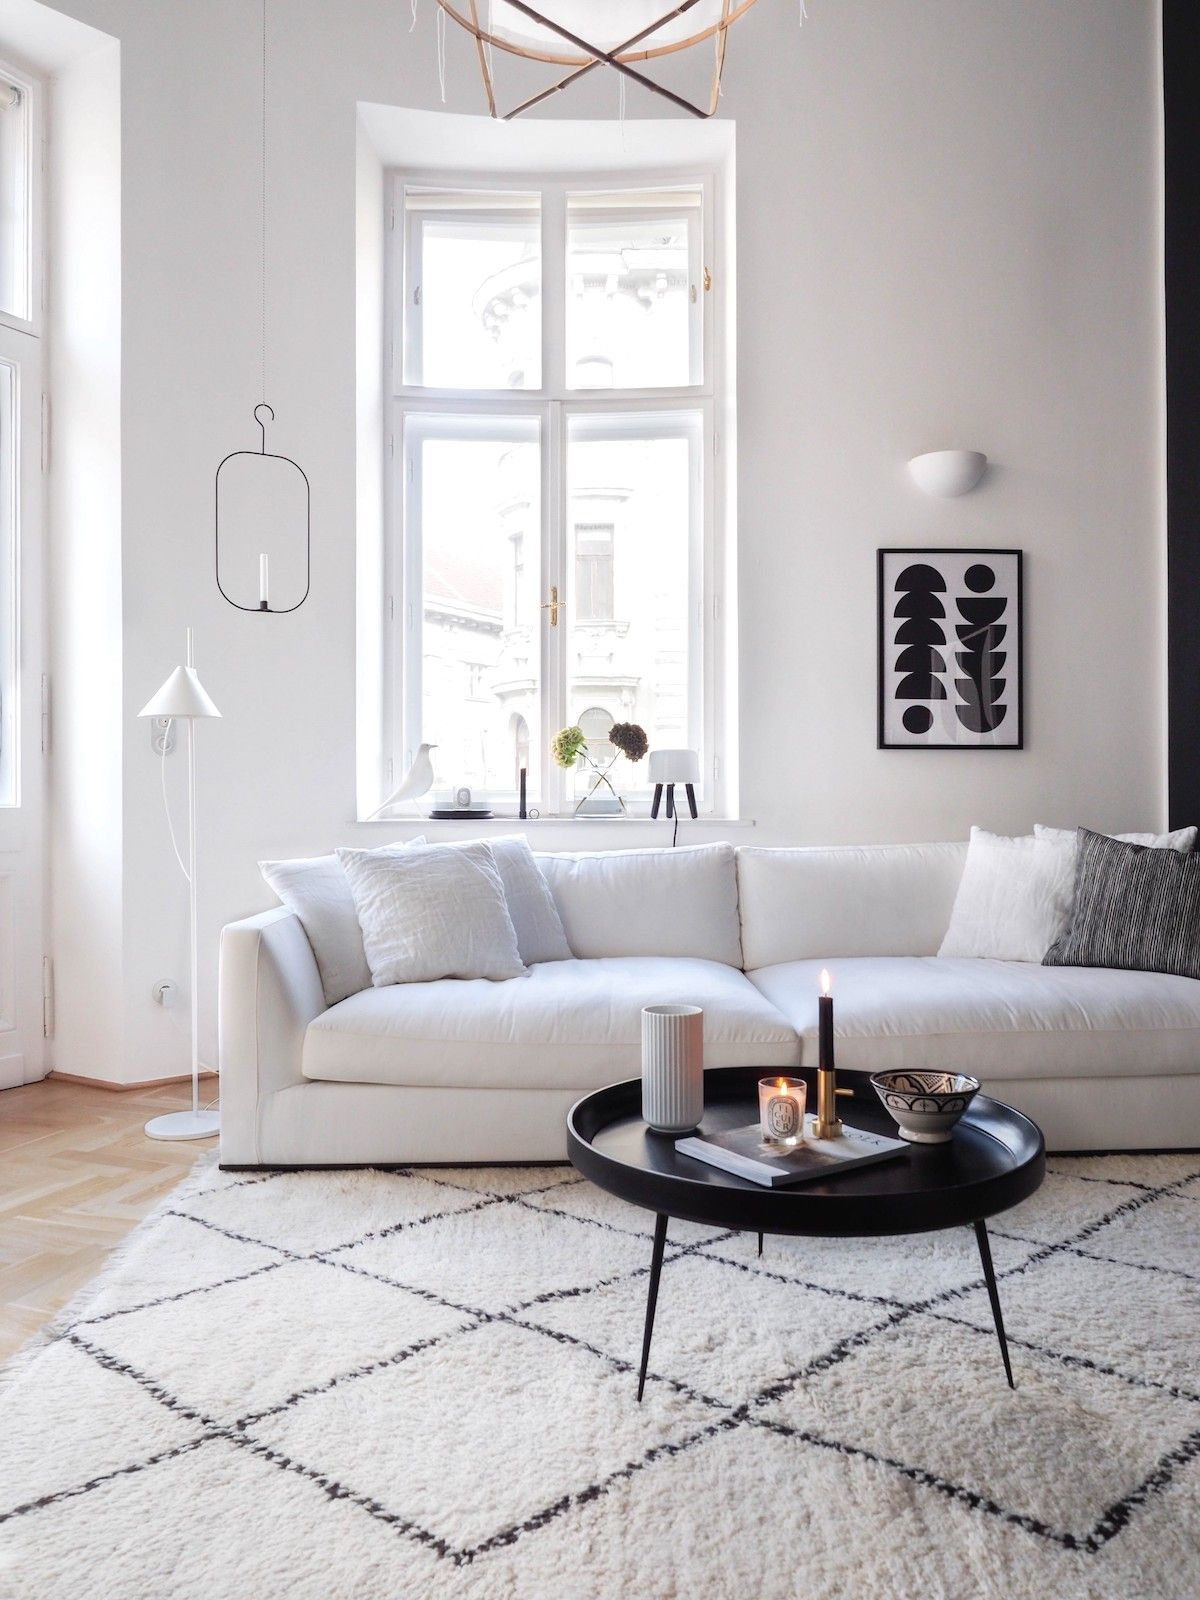 Scandinavian Rug under white sofa and black coffee table via traumzuhause